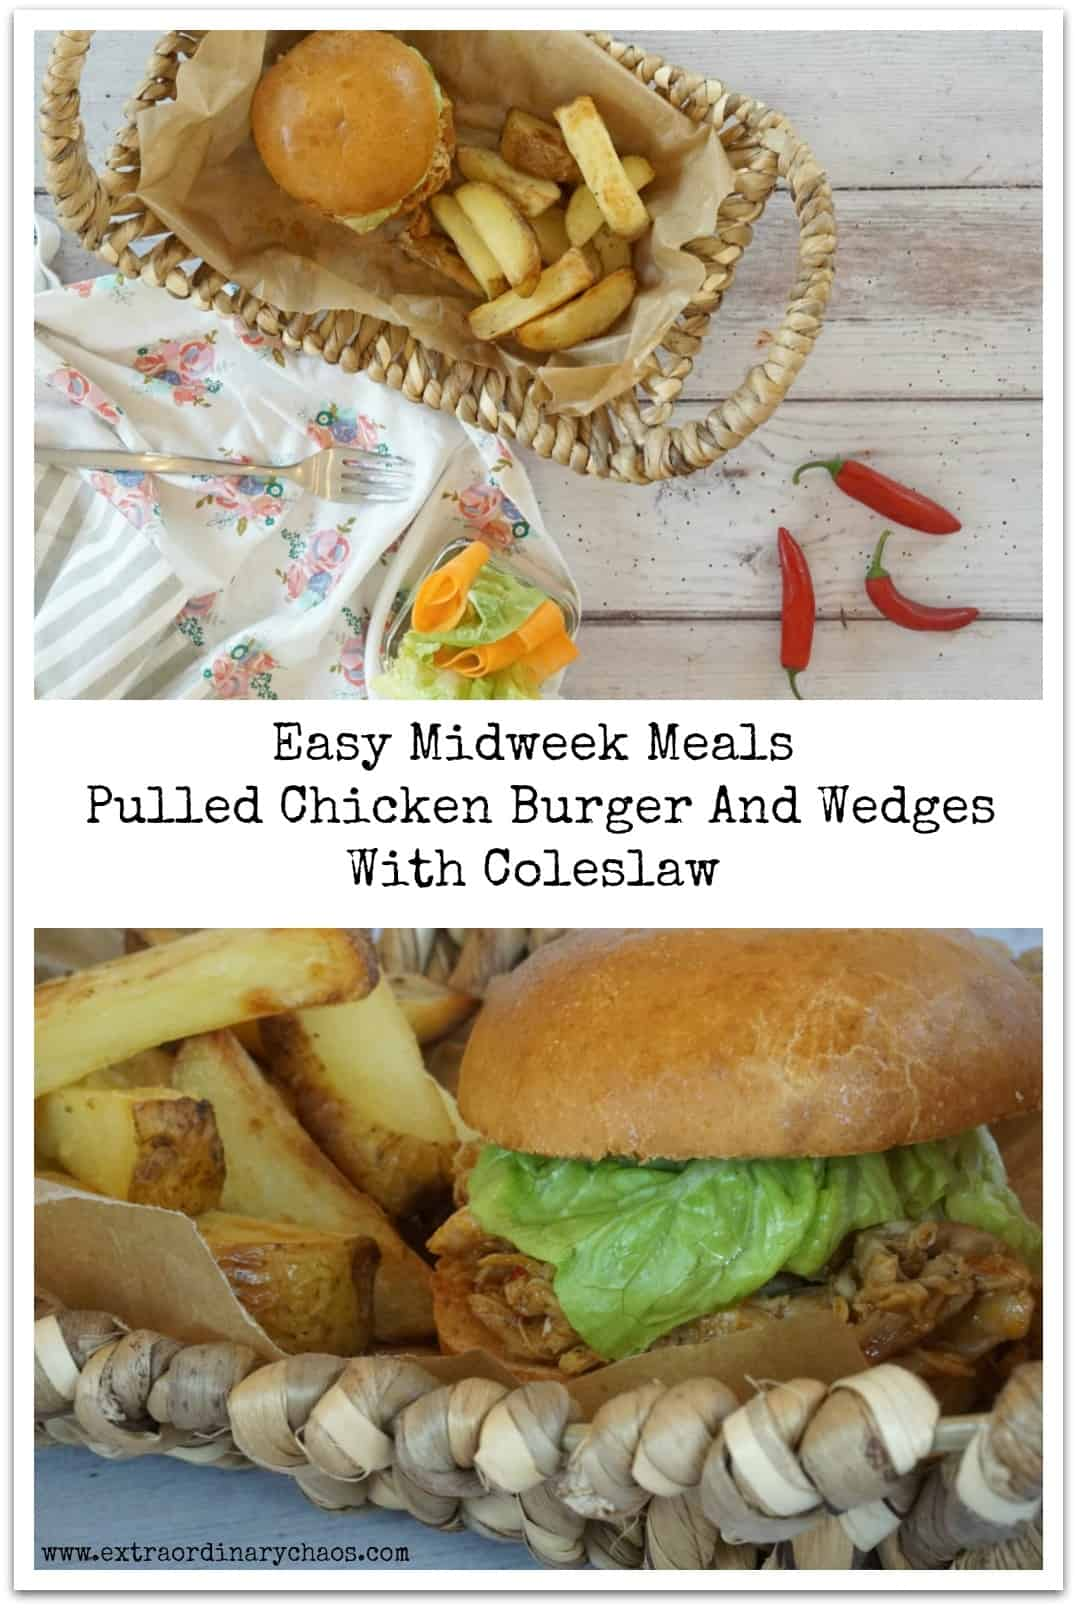 Easy Midweek Meals for busy families, BBQ Pulled Chicken Burger And Wedges With Coleslaw